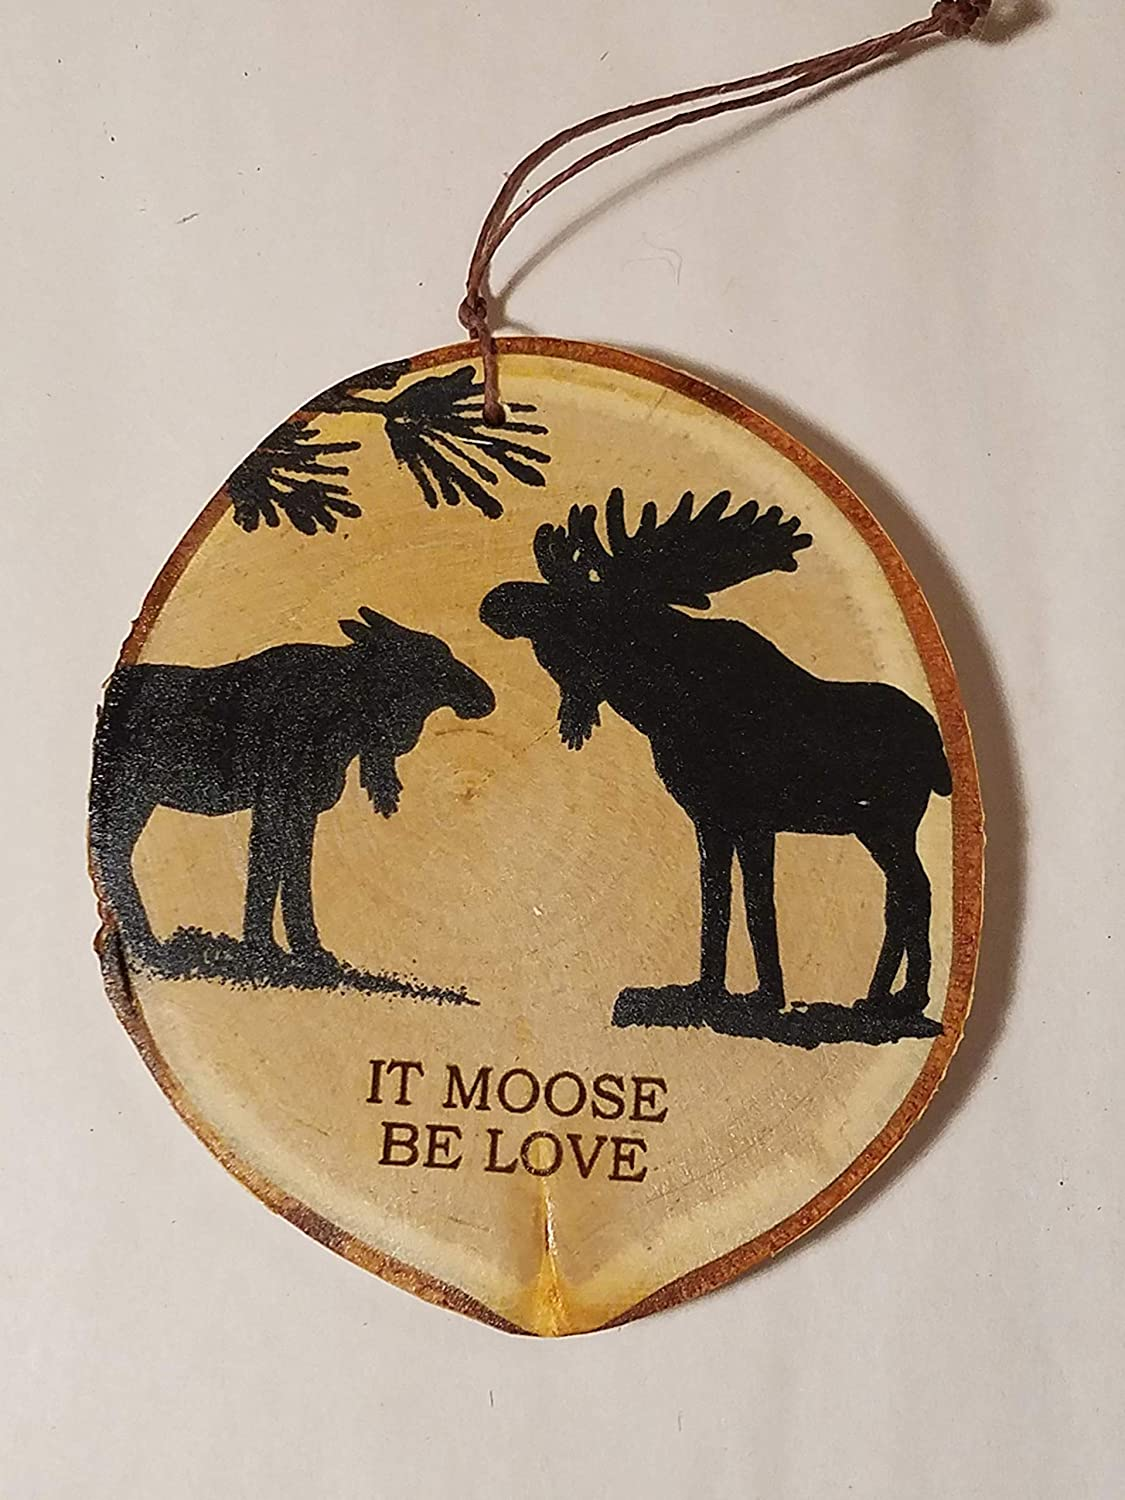 PERSONALIZE IT! Moose Christmas Tree Ornament hand painted on a birch tree wood slice for a woodland rustic cabin decor